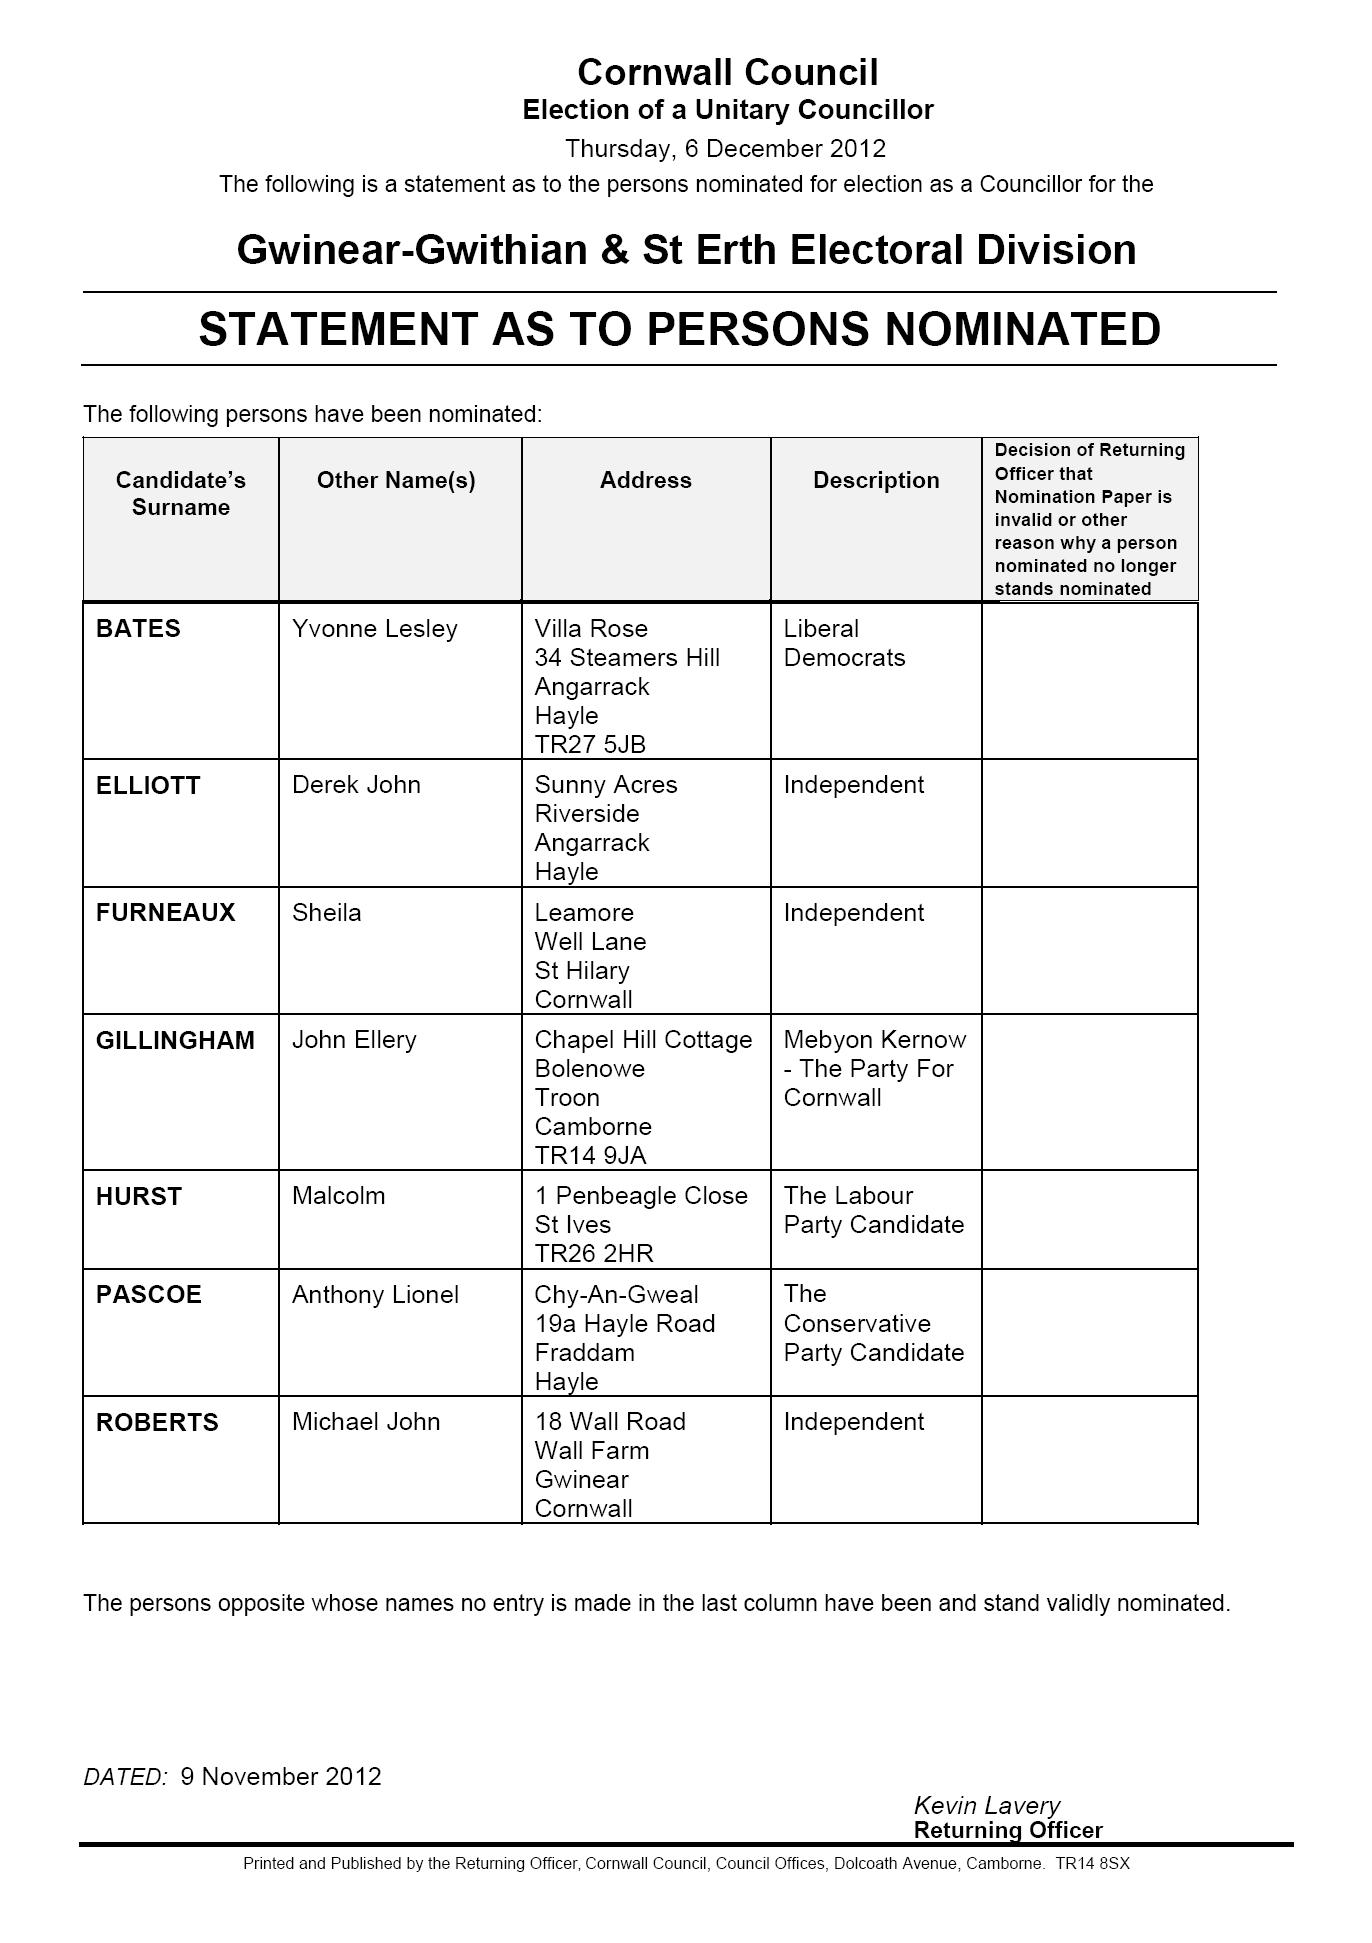 Cornwall Council – election of a Unitary Councillor – Statement as to persons nominated